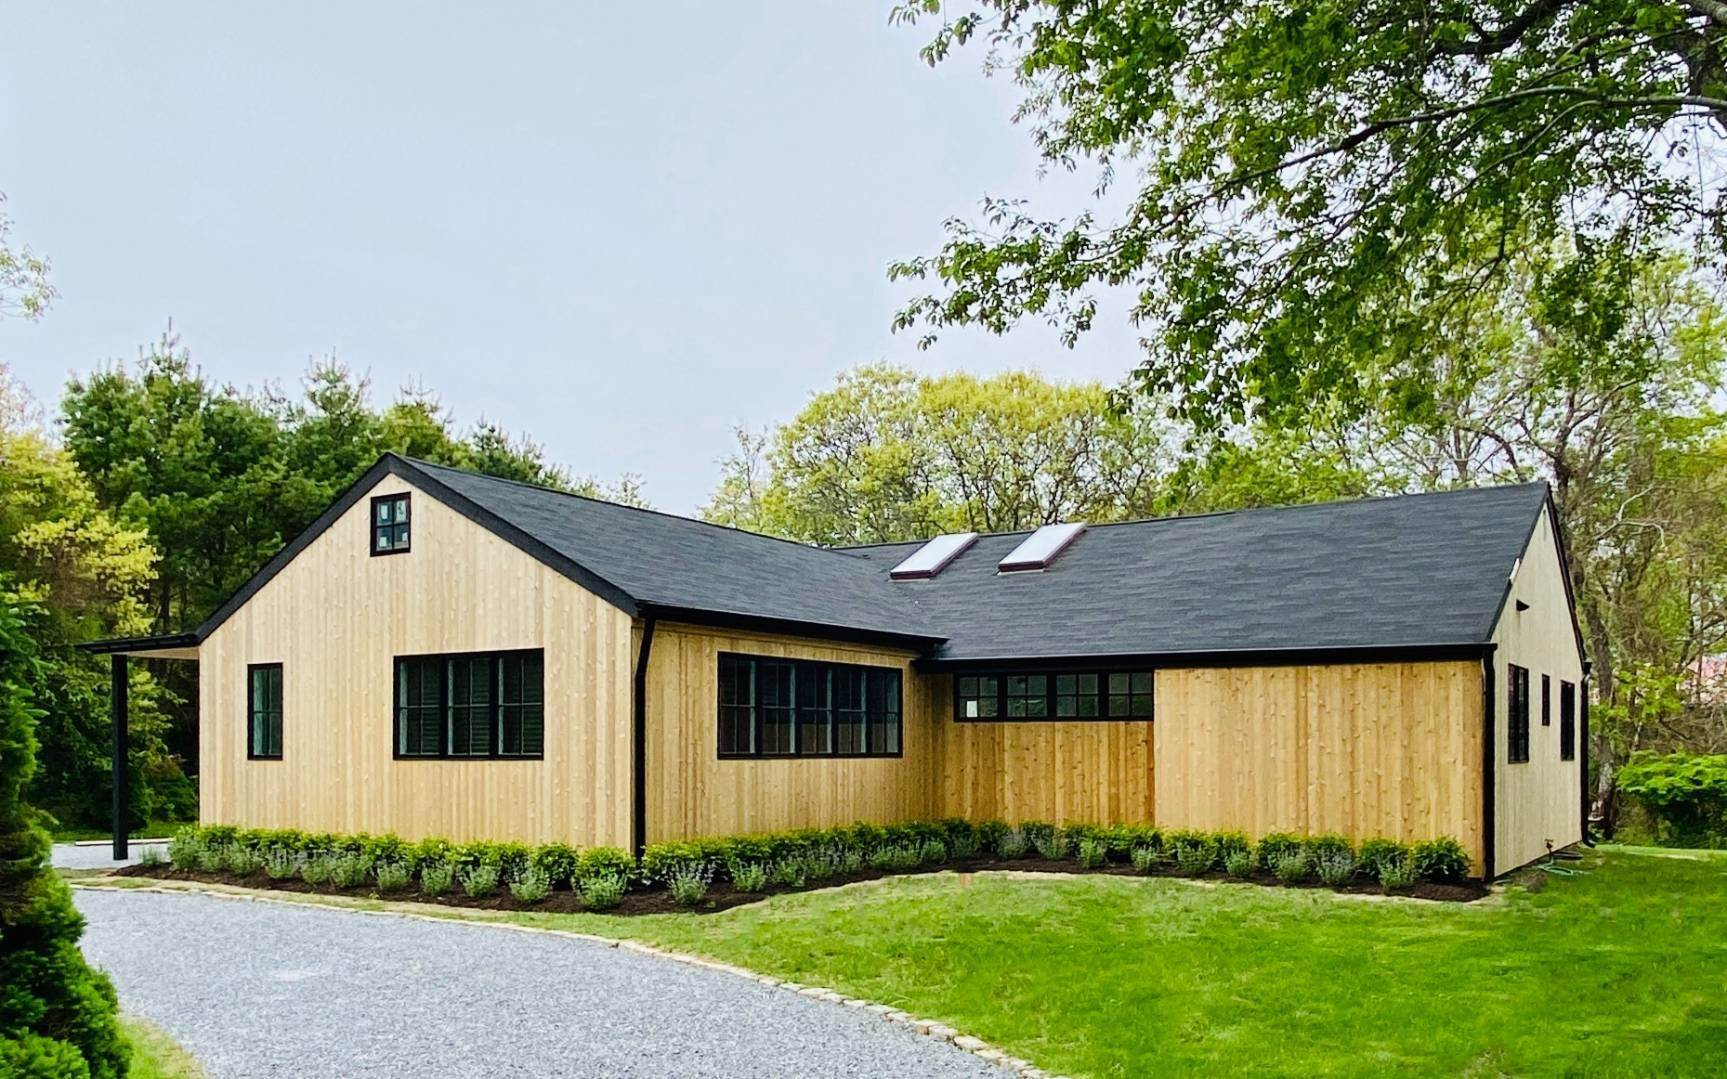 Single Family Home at New Modern Ranch Home For Rent 177 Meadows West, Bridgehampton, NY 11932